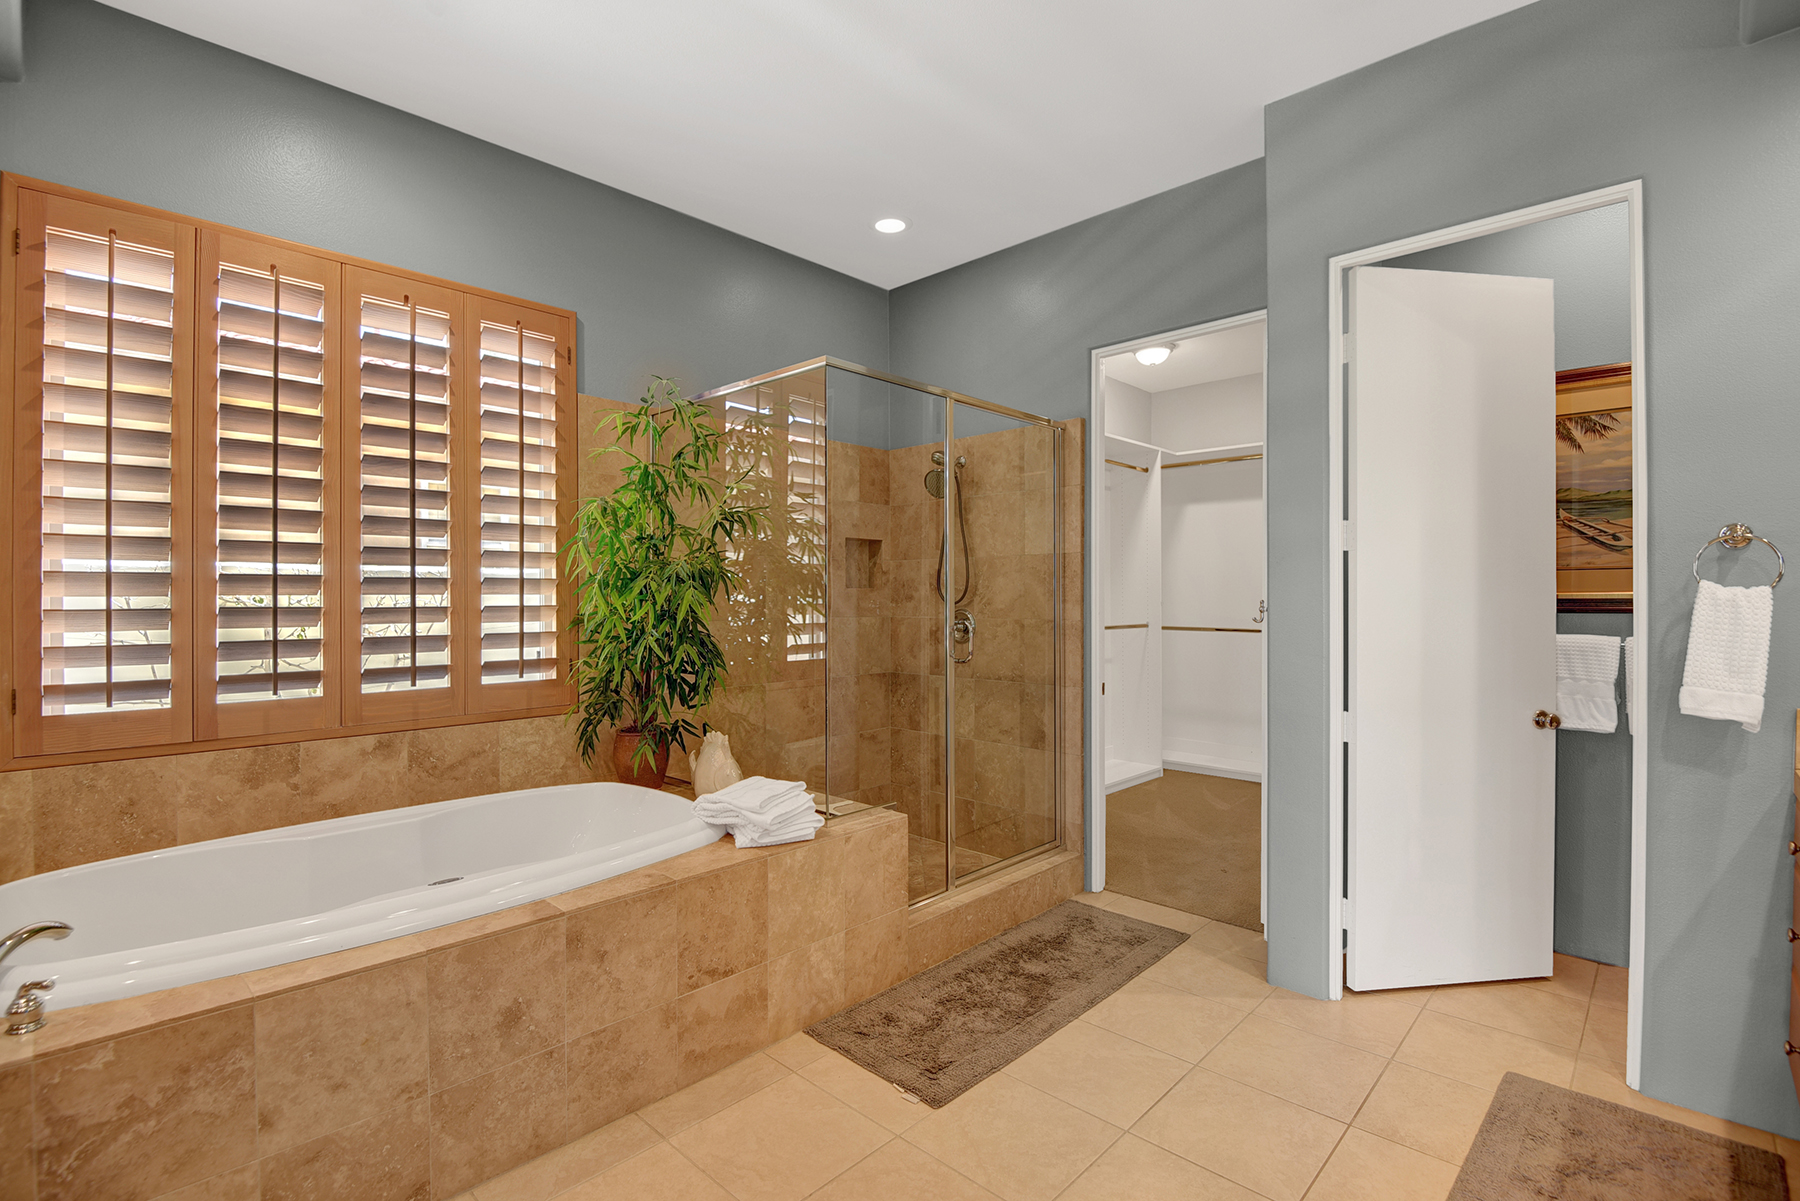 A88C3918-C54D-3B68-2FD08C3126024369-MASTER BATHROOM RS.jpg